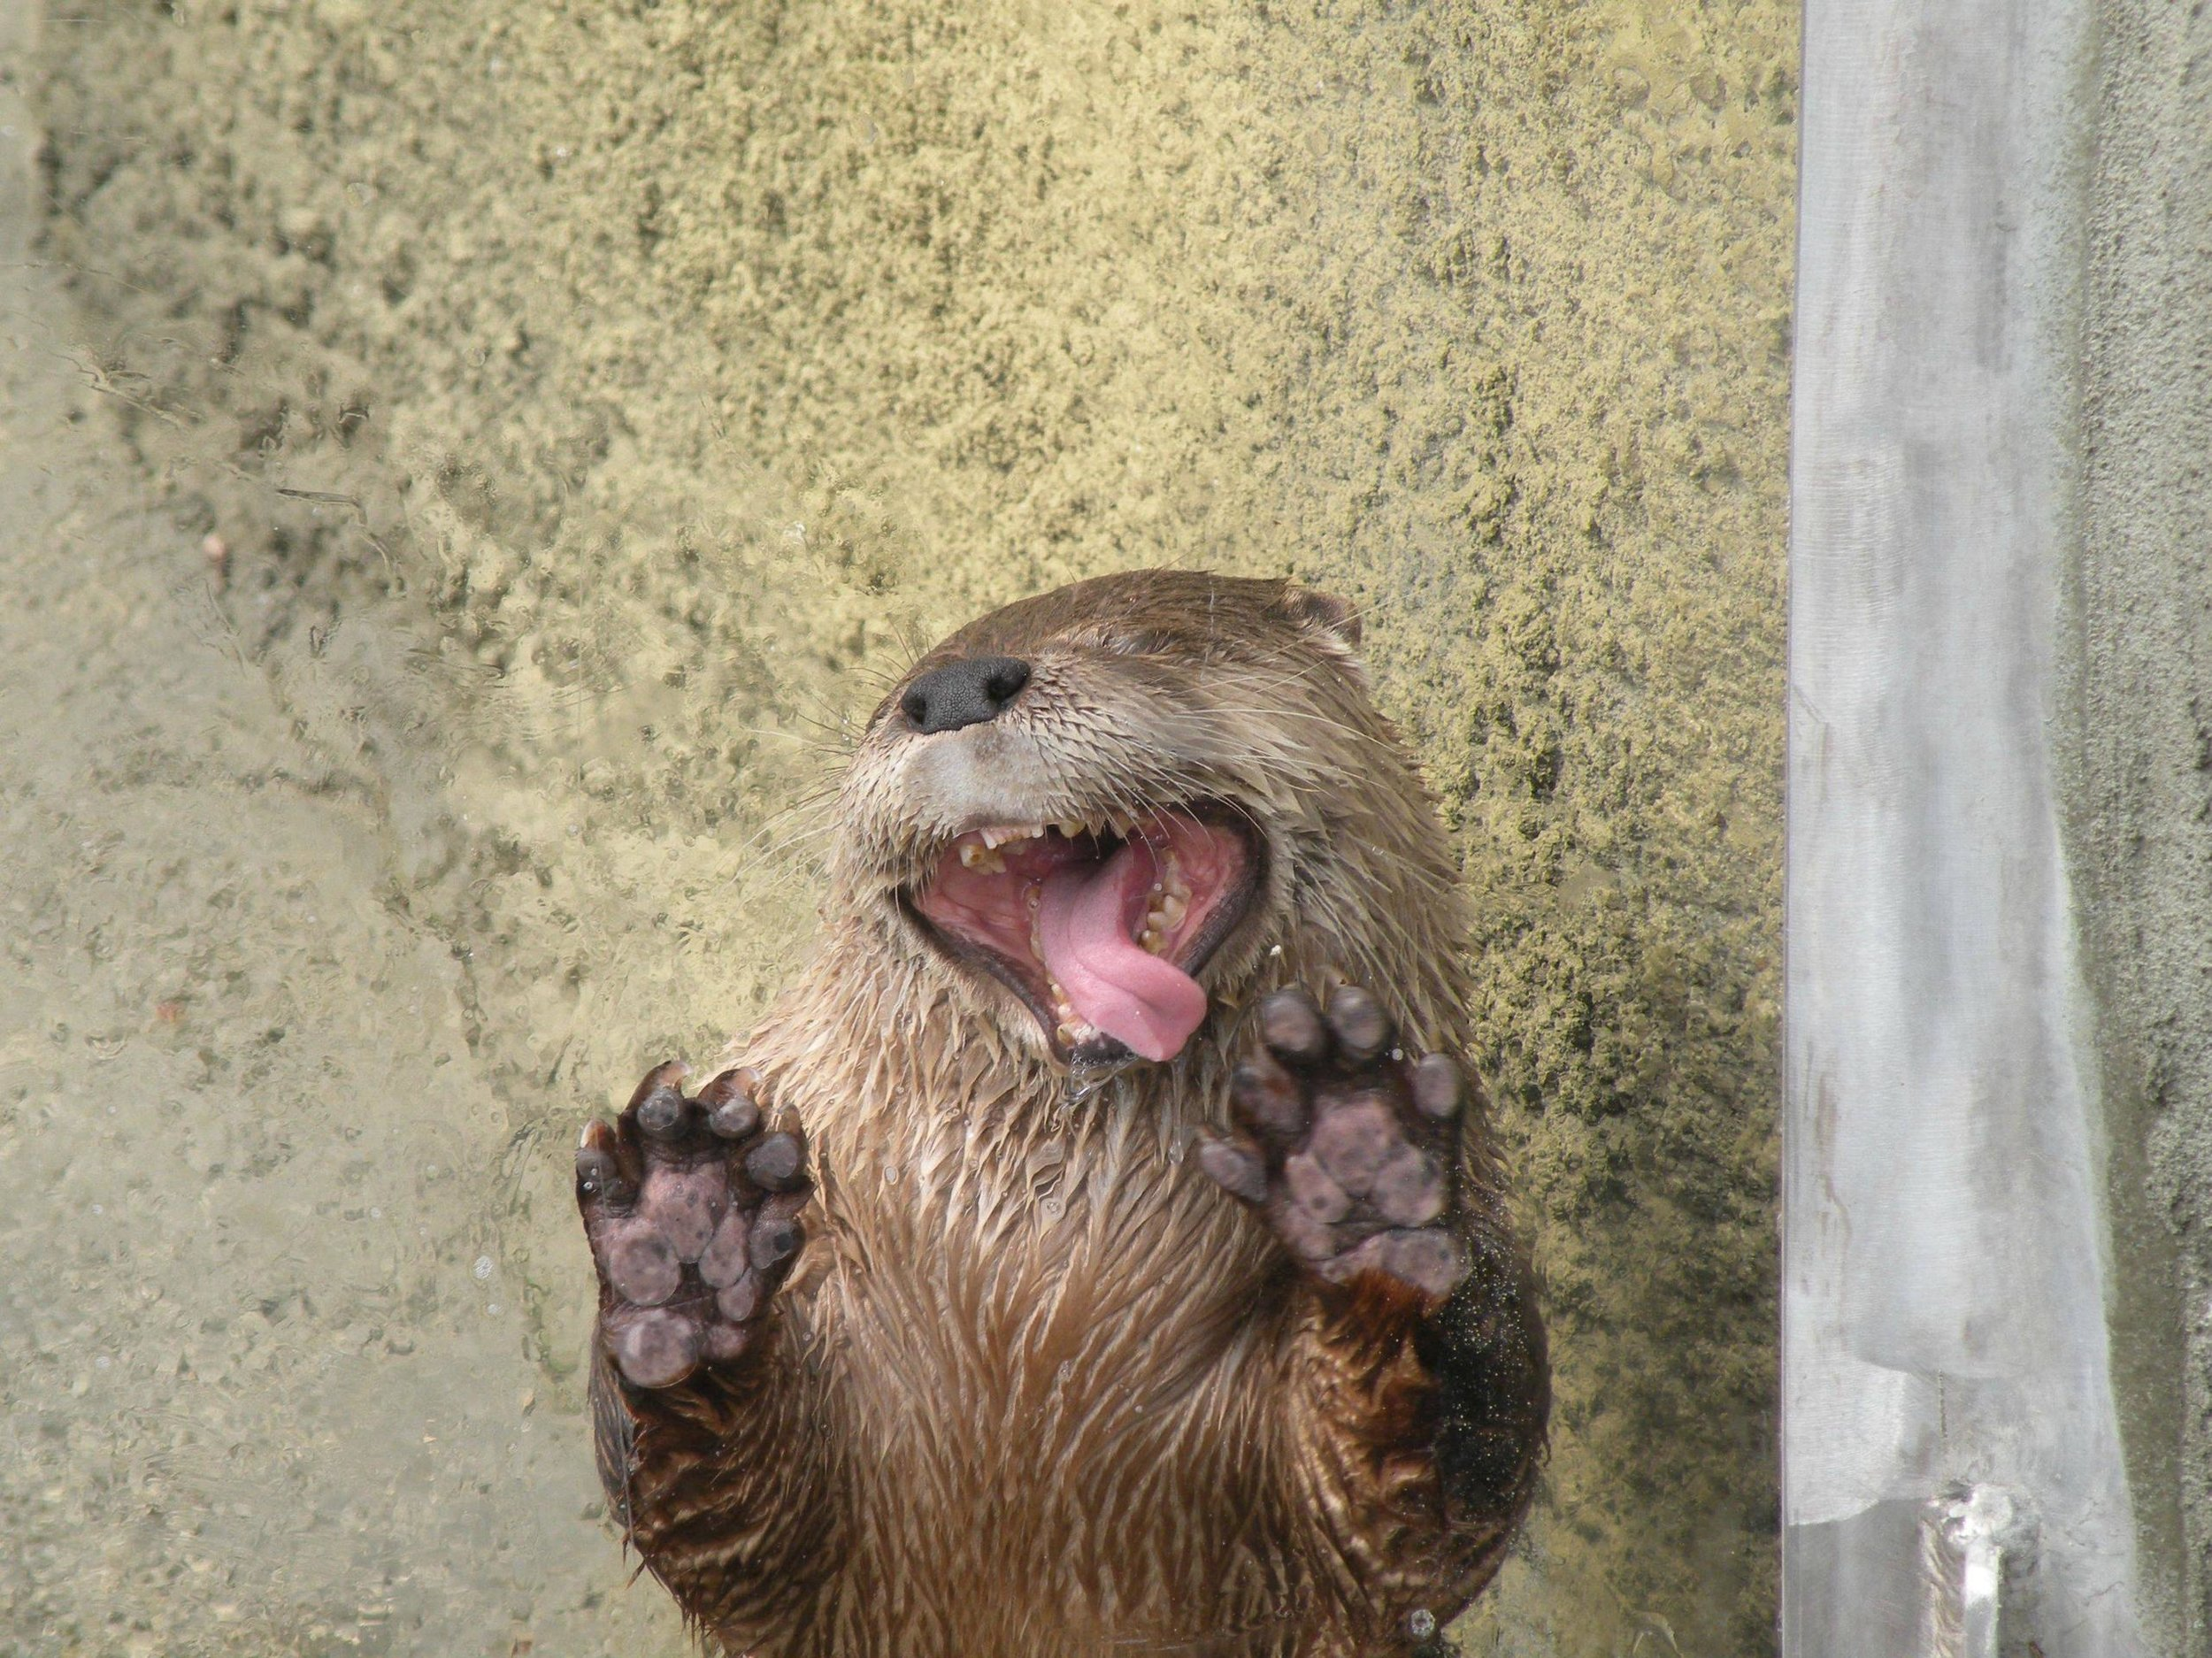 Otter Makes Goofy Faces through the Glass